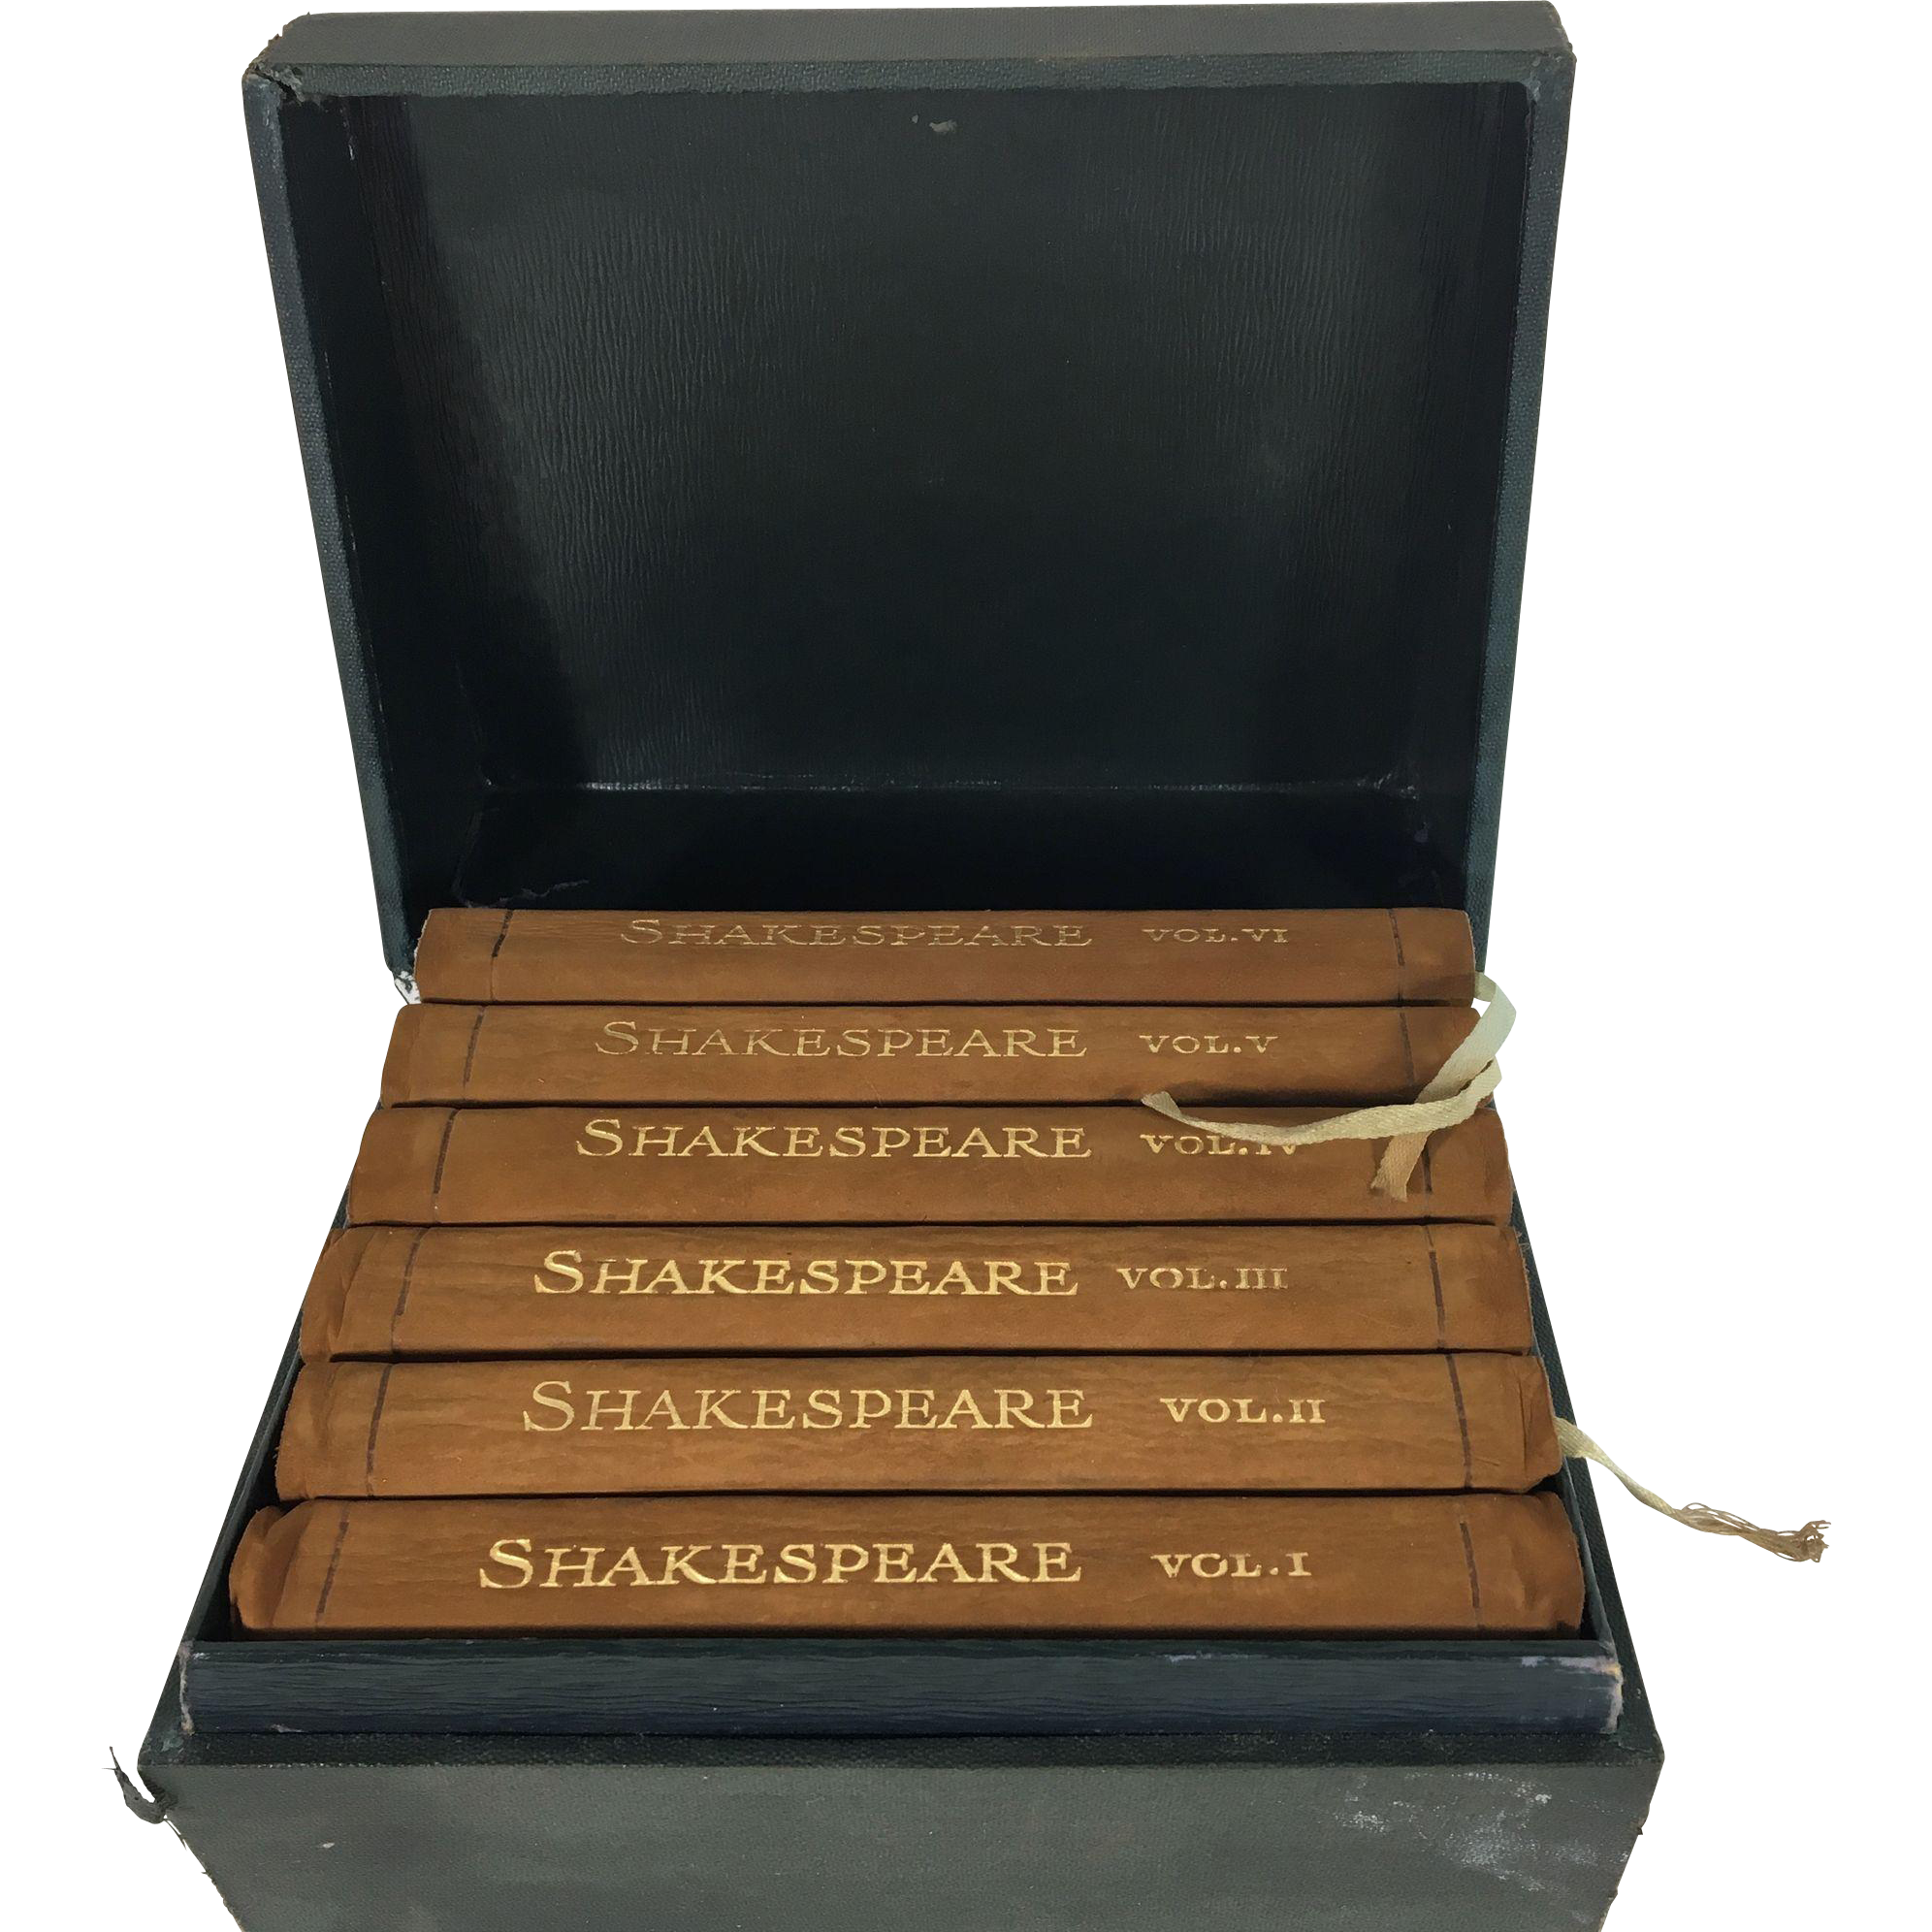 "The Bijou Shakespeare: The Complete Works of William Shakespeare in Six Volumes, Suede Covers, Original Boxed Set, 3"" x 5 1/8"""